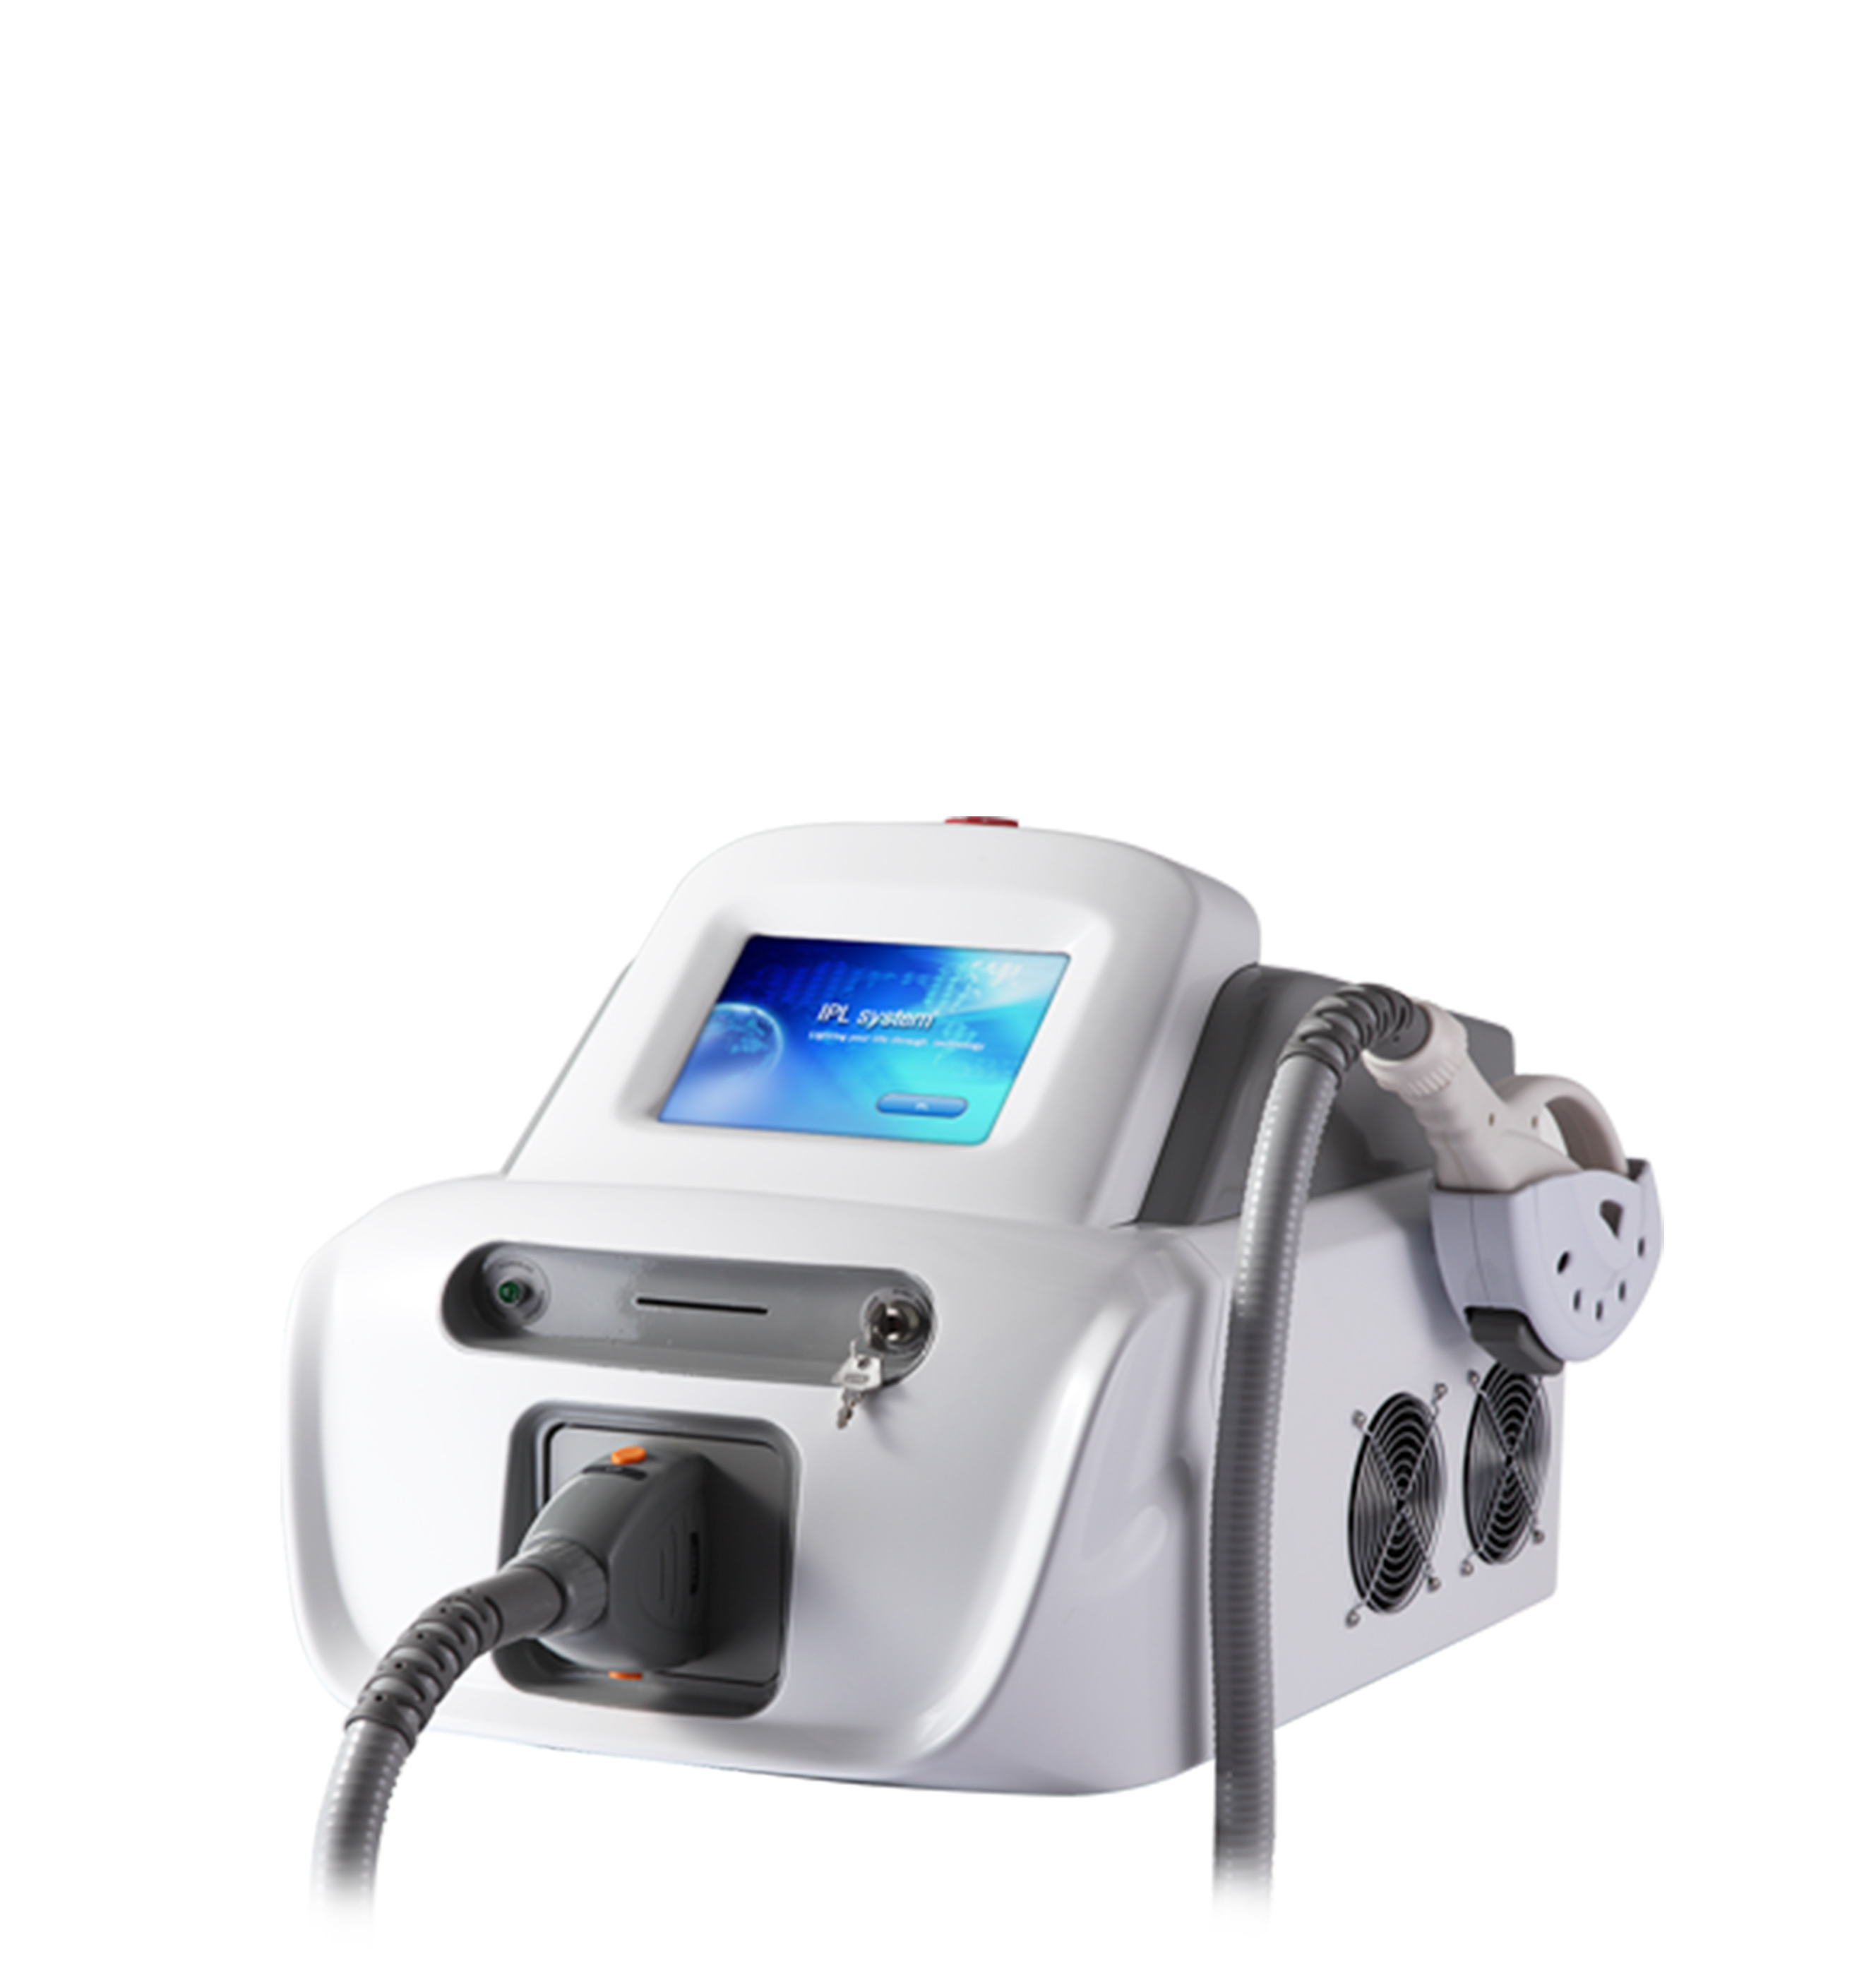 Factory Outlets Led Pdt Bio-Light Therapy - IPL SHR HS-620 – Apolo